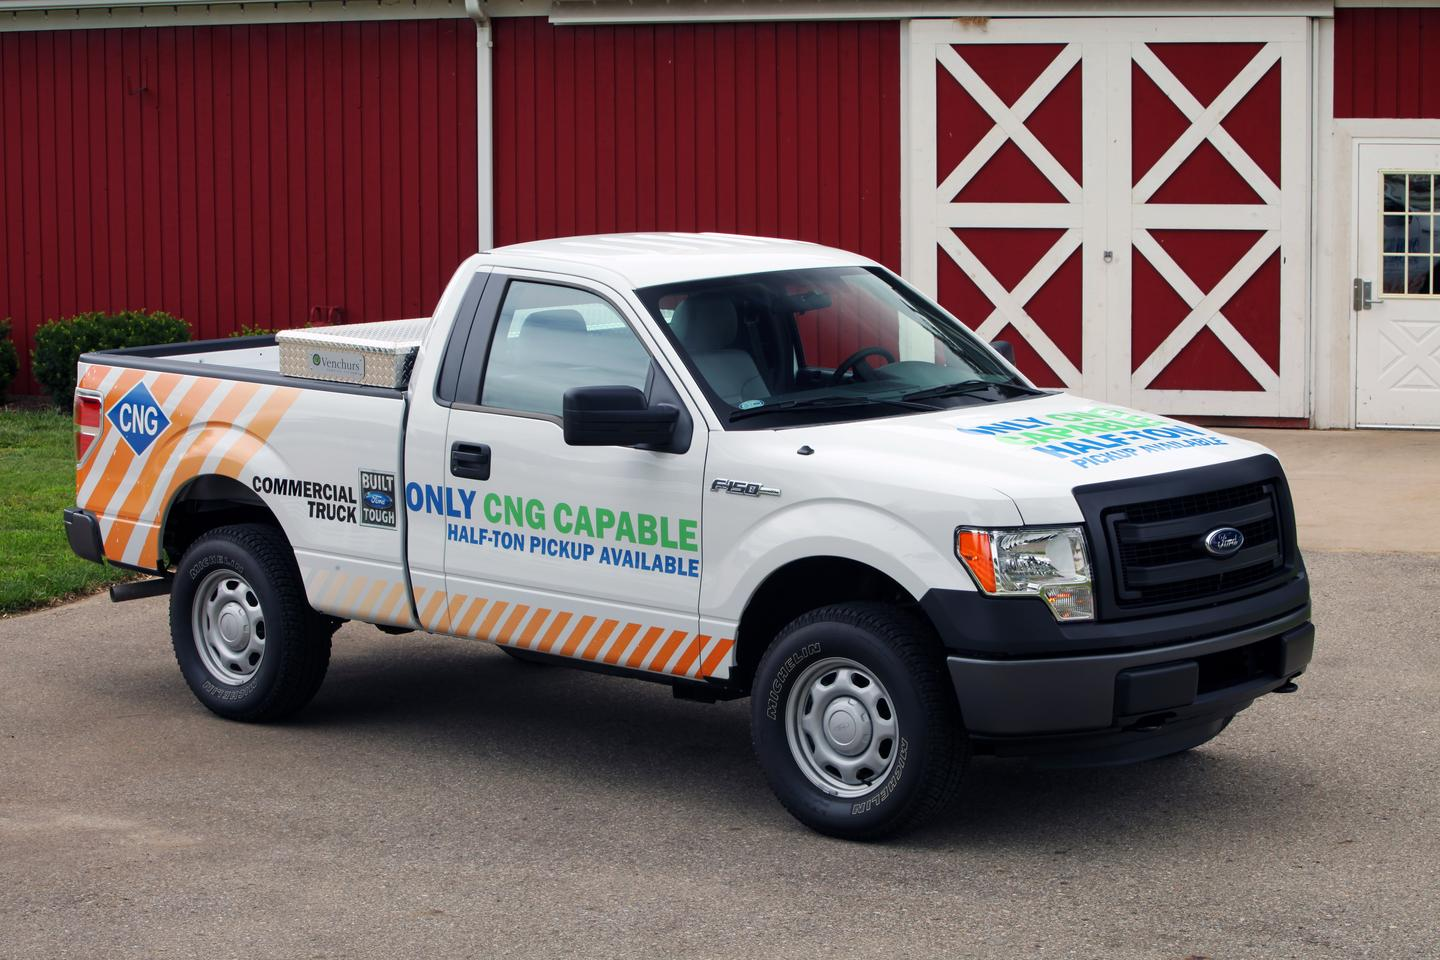 The 2014 Ford F-150 gets a dual-fuel CNG option